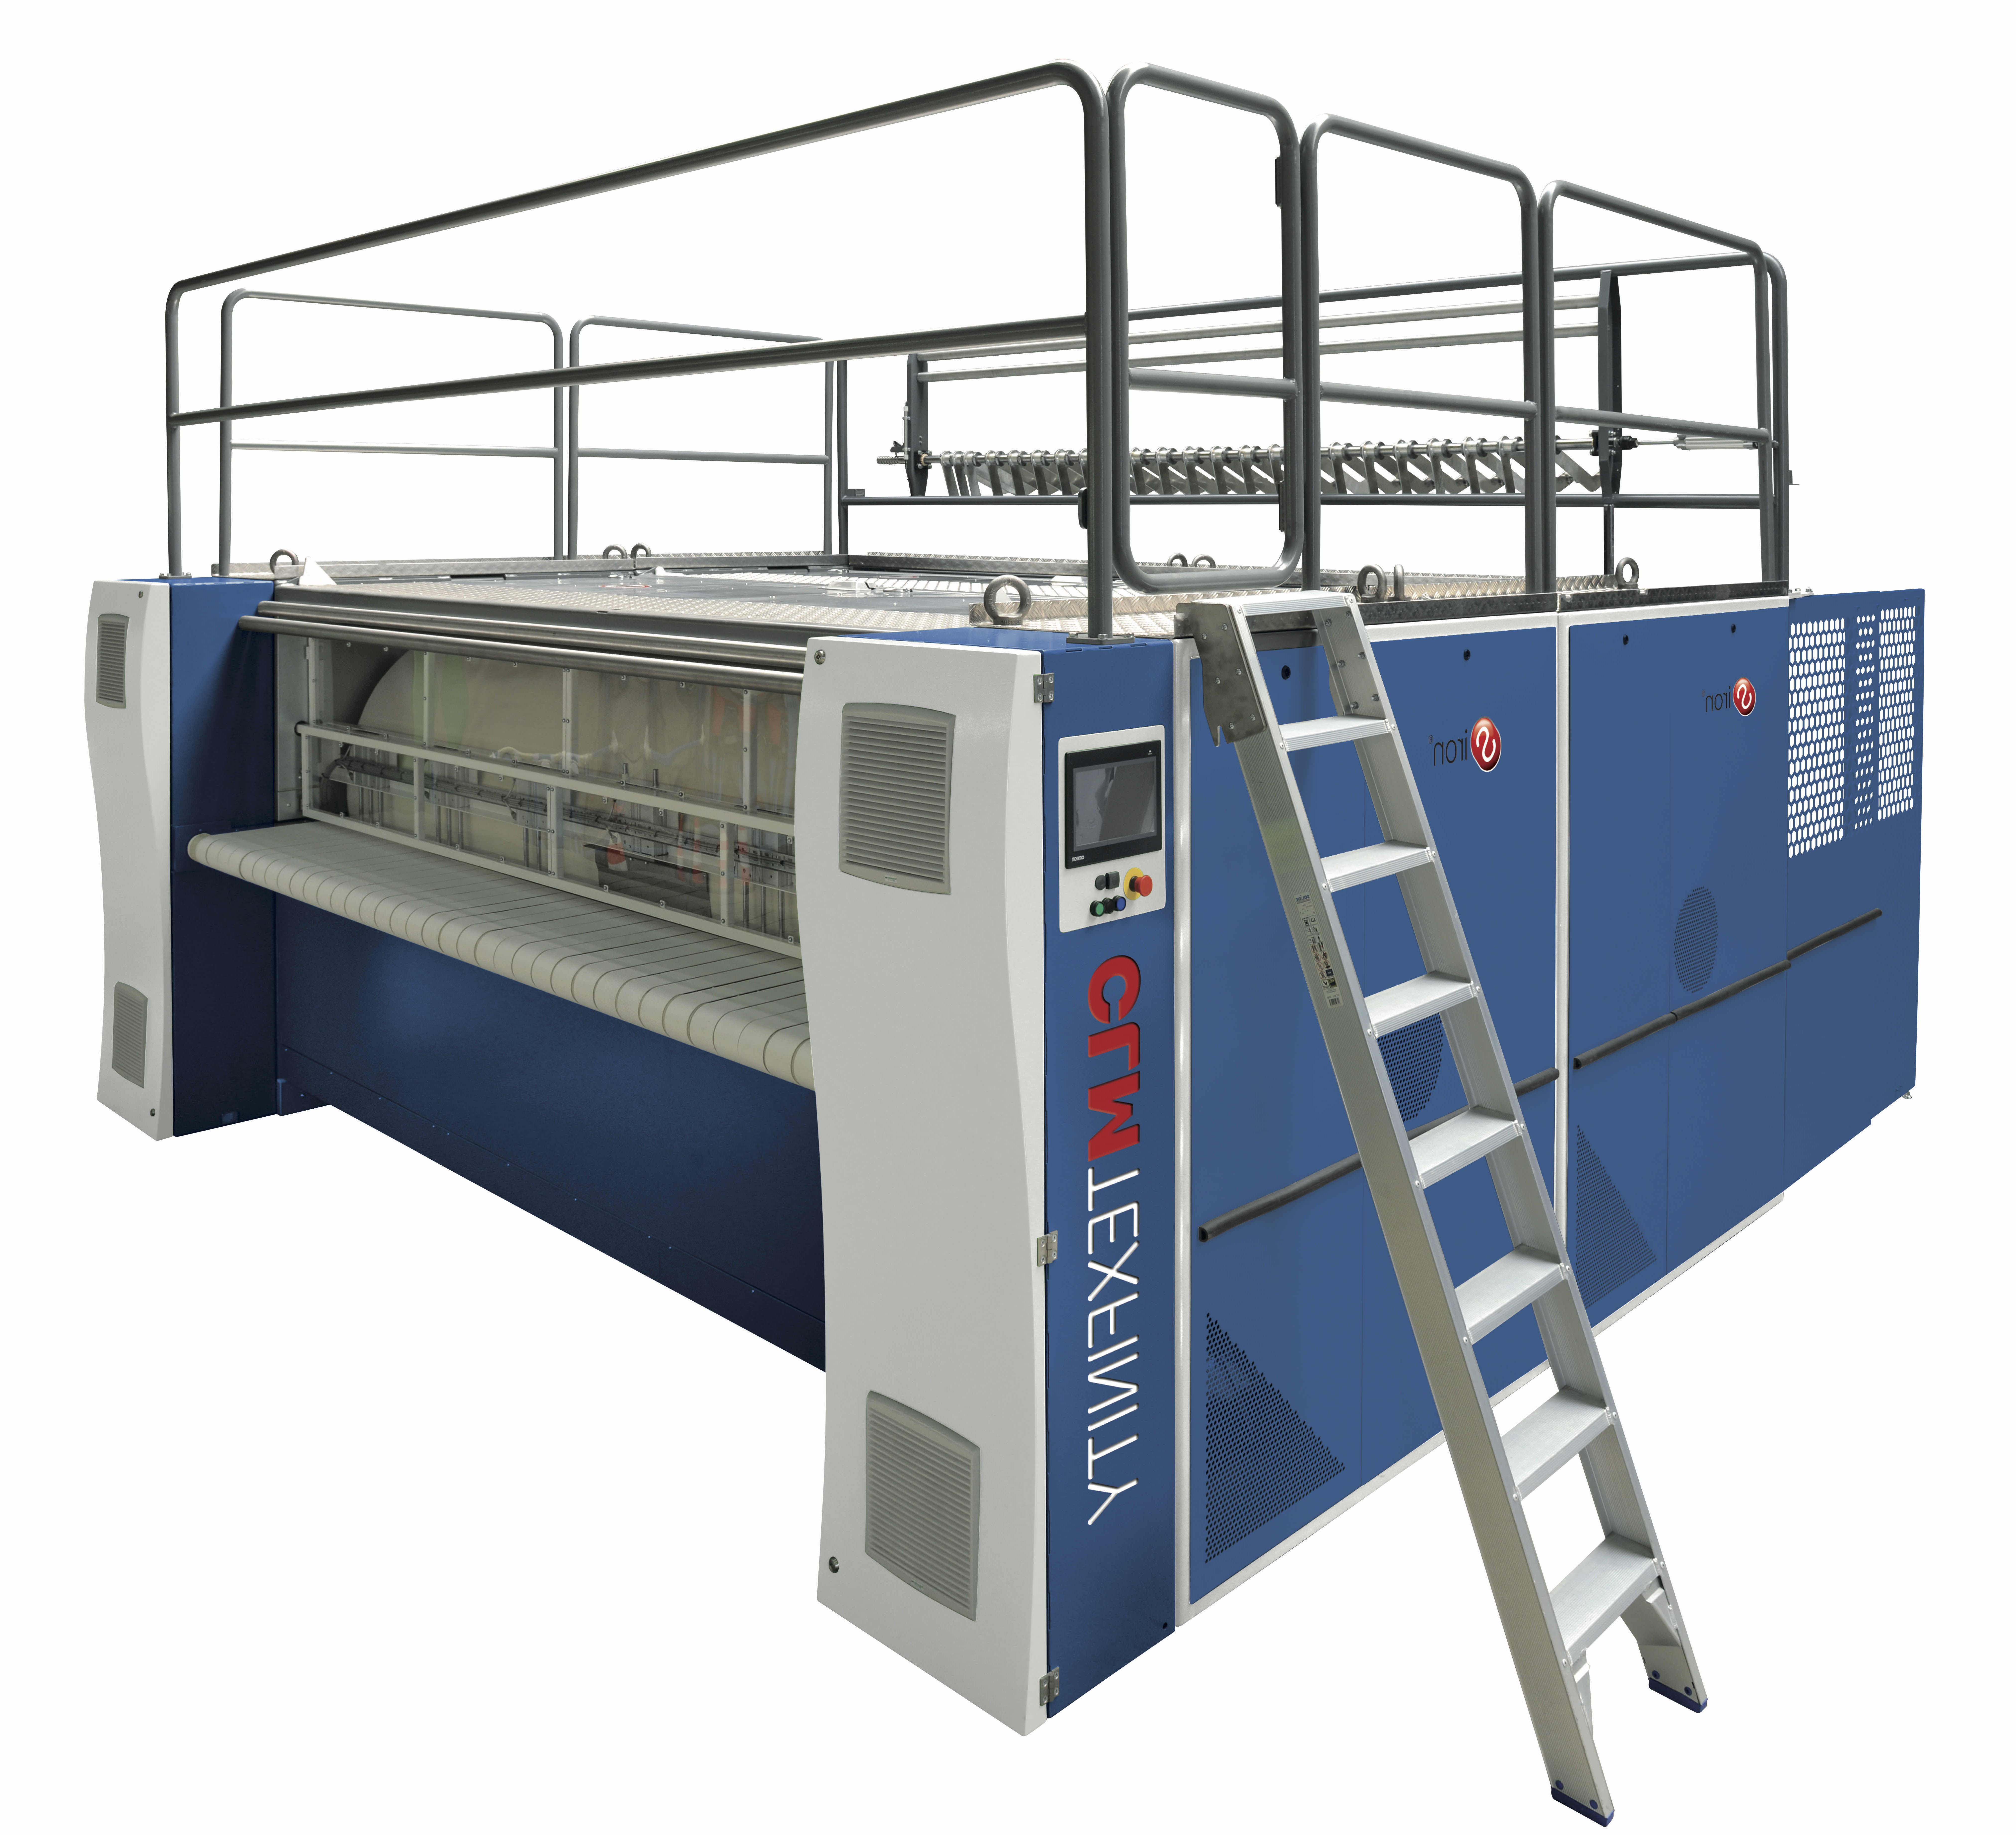 CLM Texfinity Chest Ironer with 3-pass Heat Exchanger